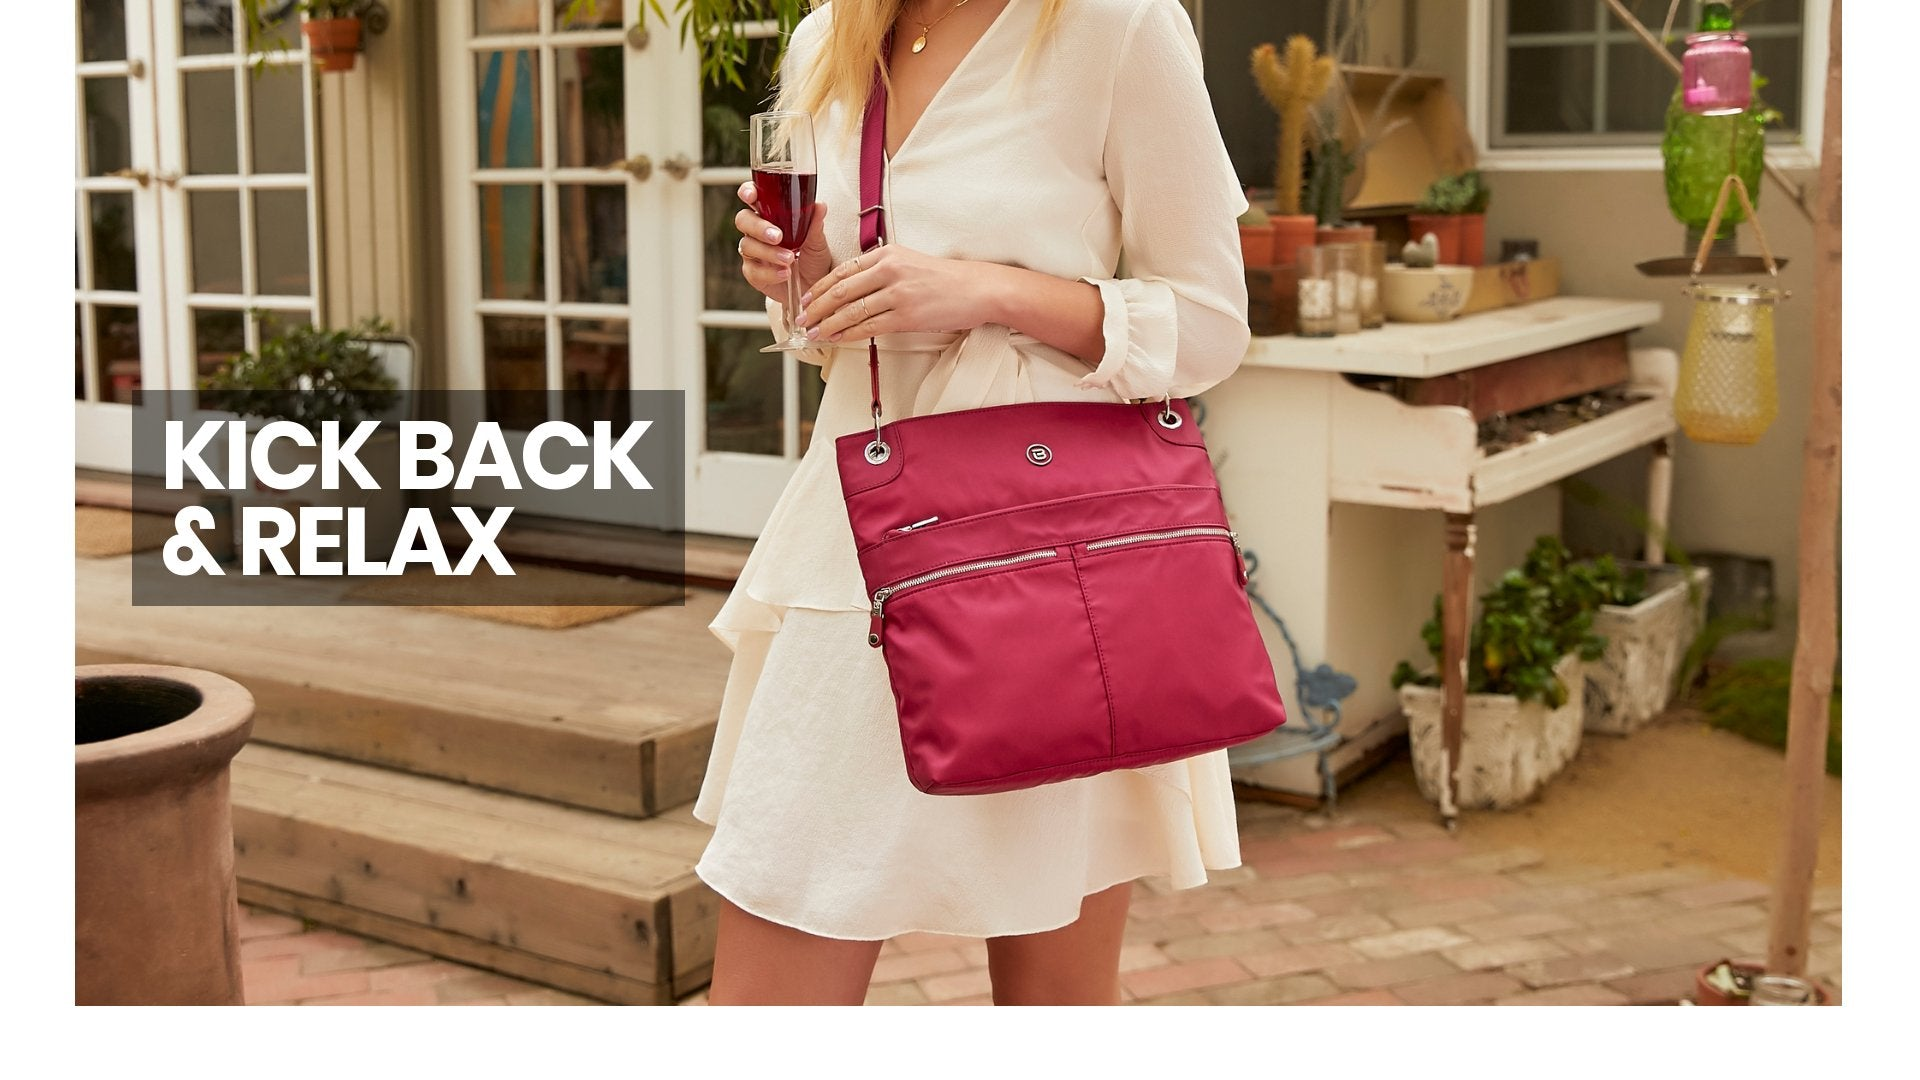 beside-u backpack sale purses fashion handbags designer bags banner